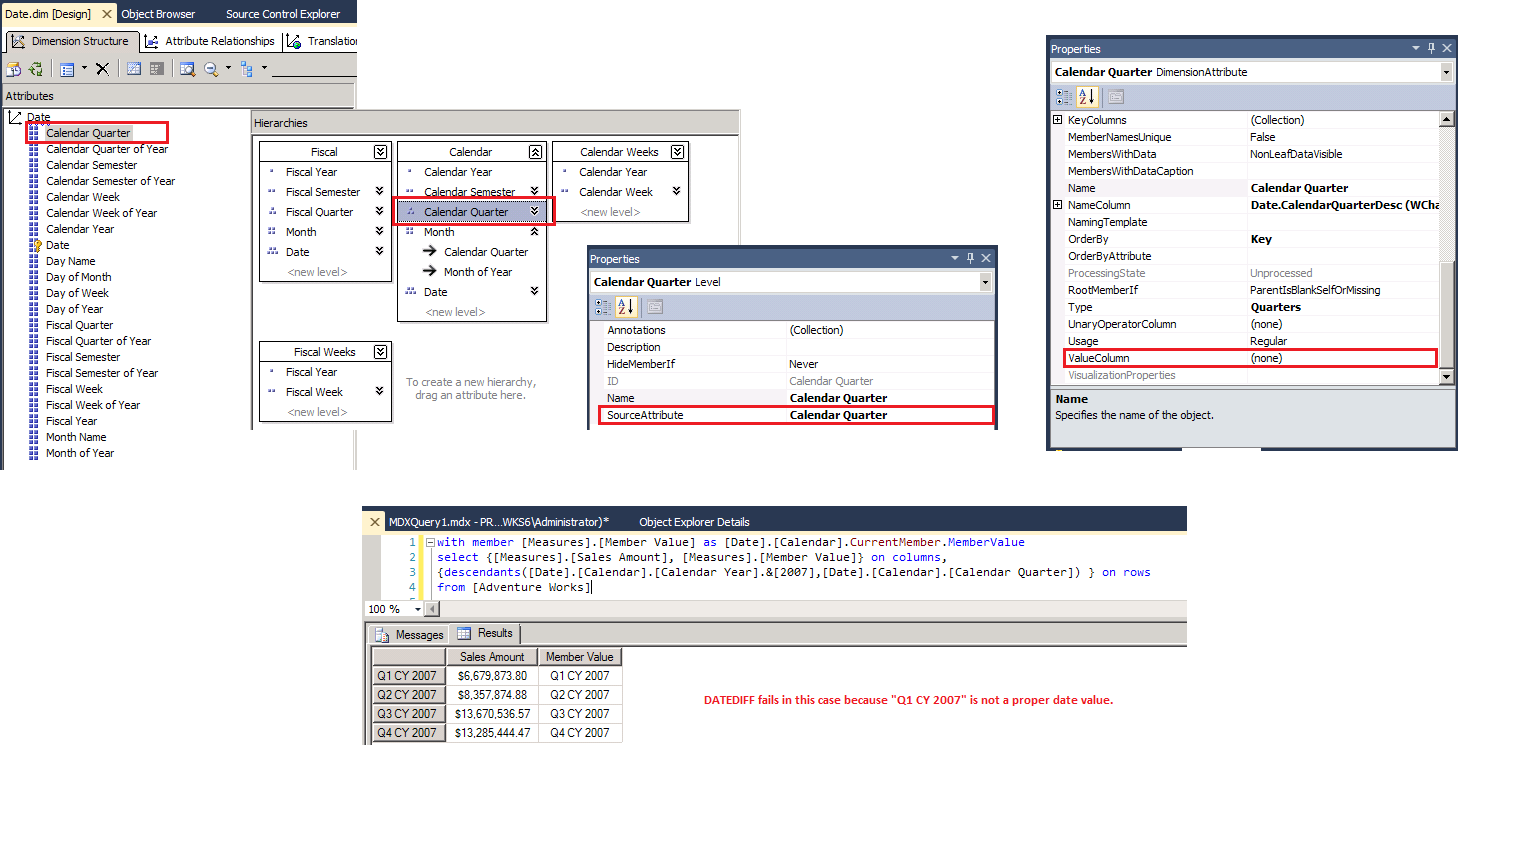 Because sql server did not have a built-in transact-sql